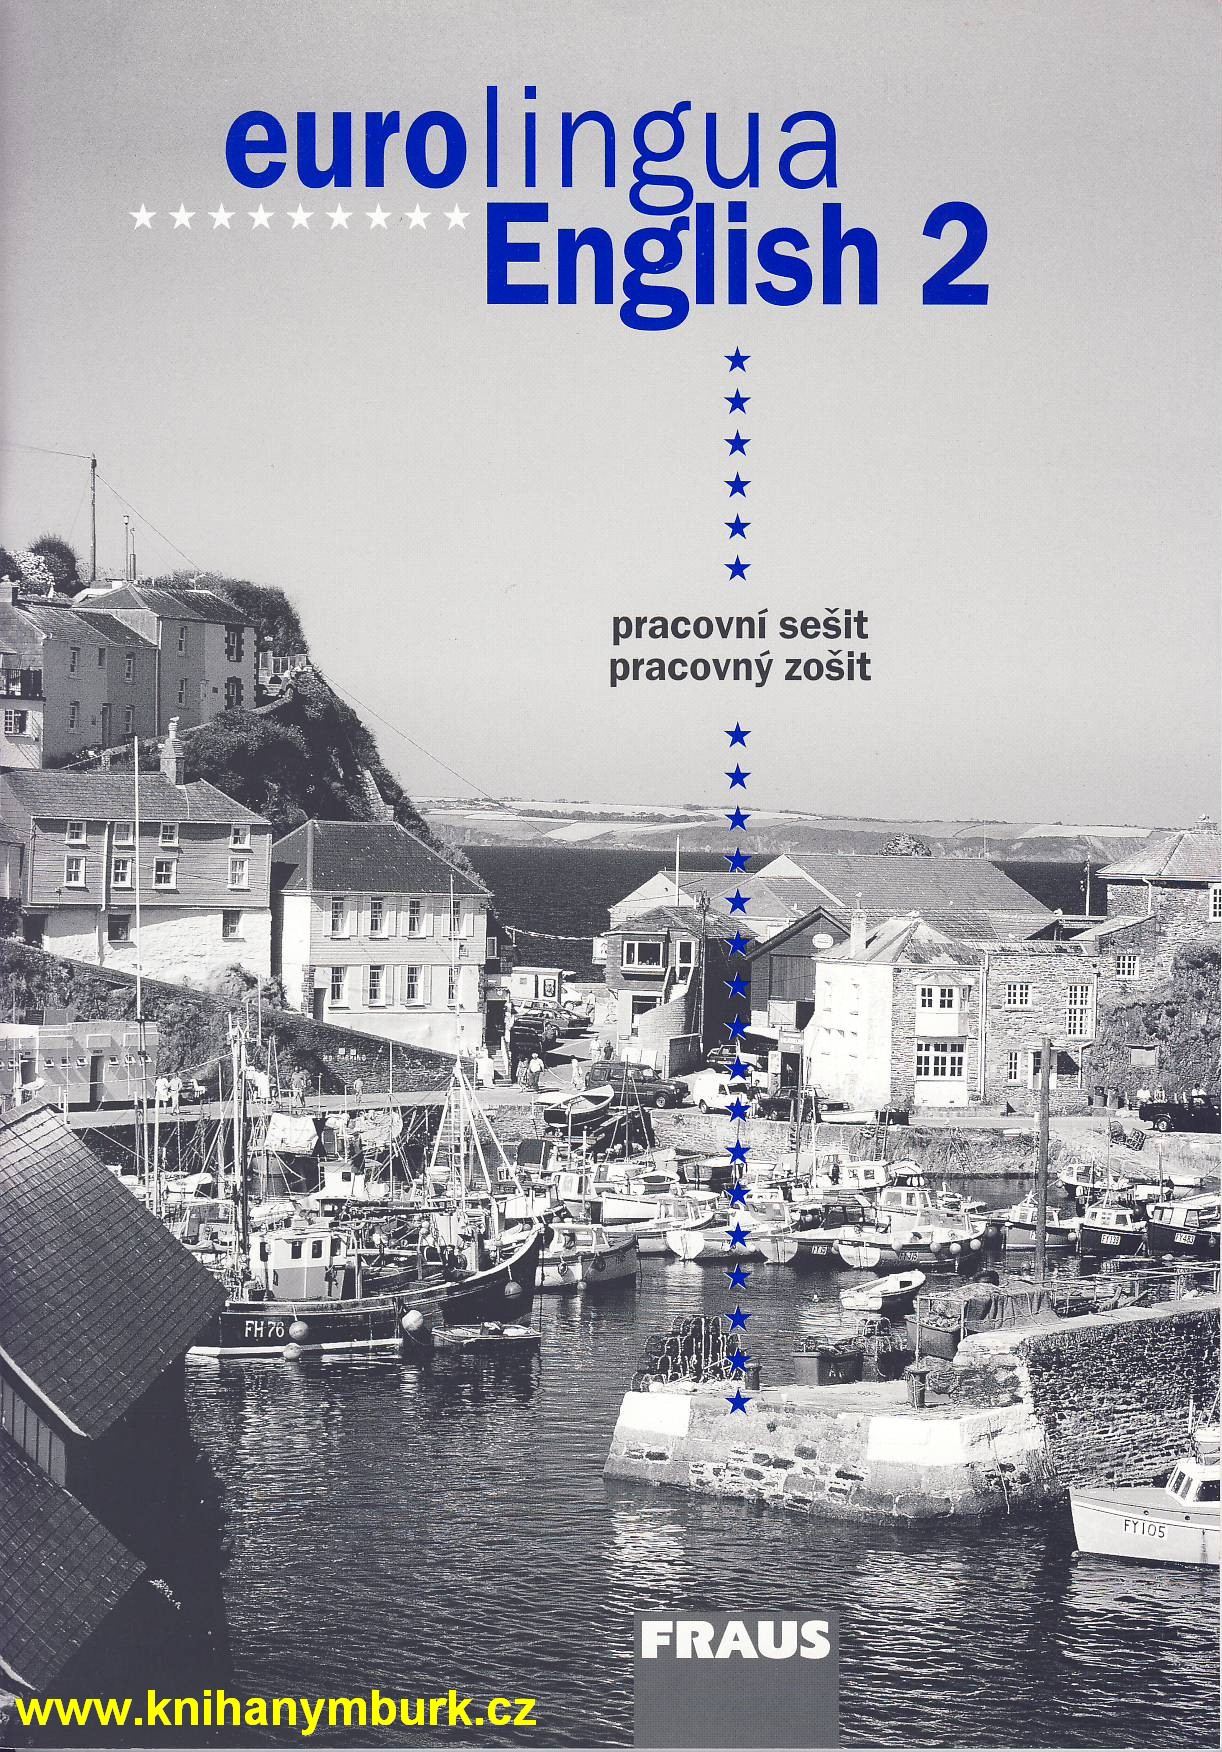 Eurolingua English 2 PS